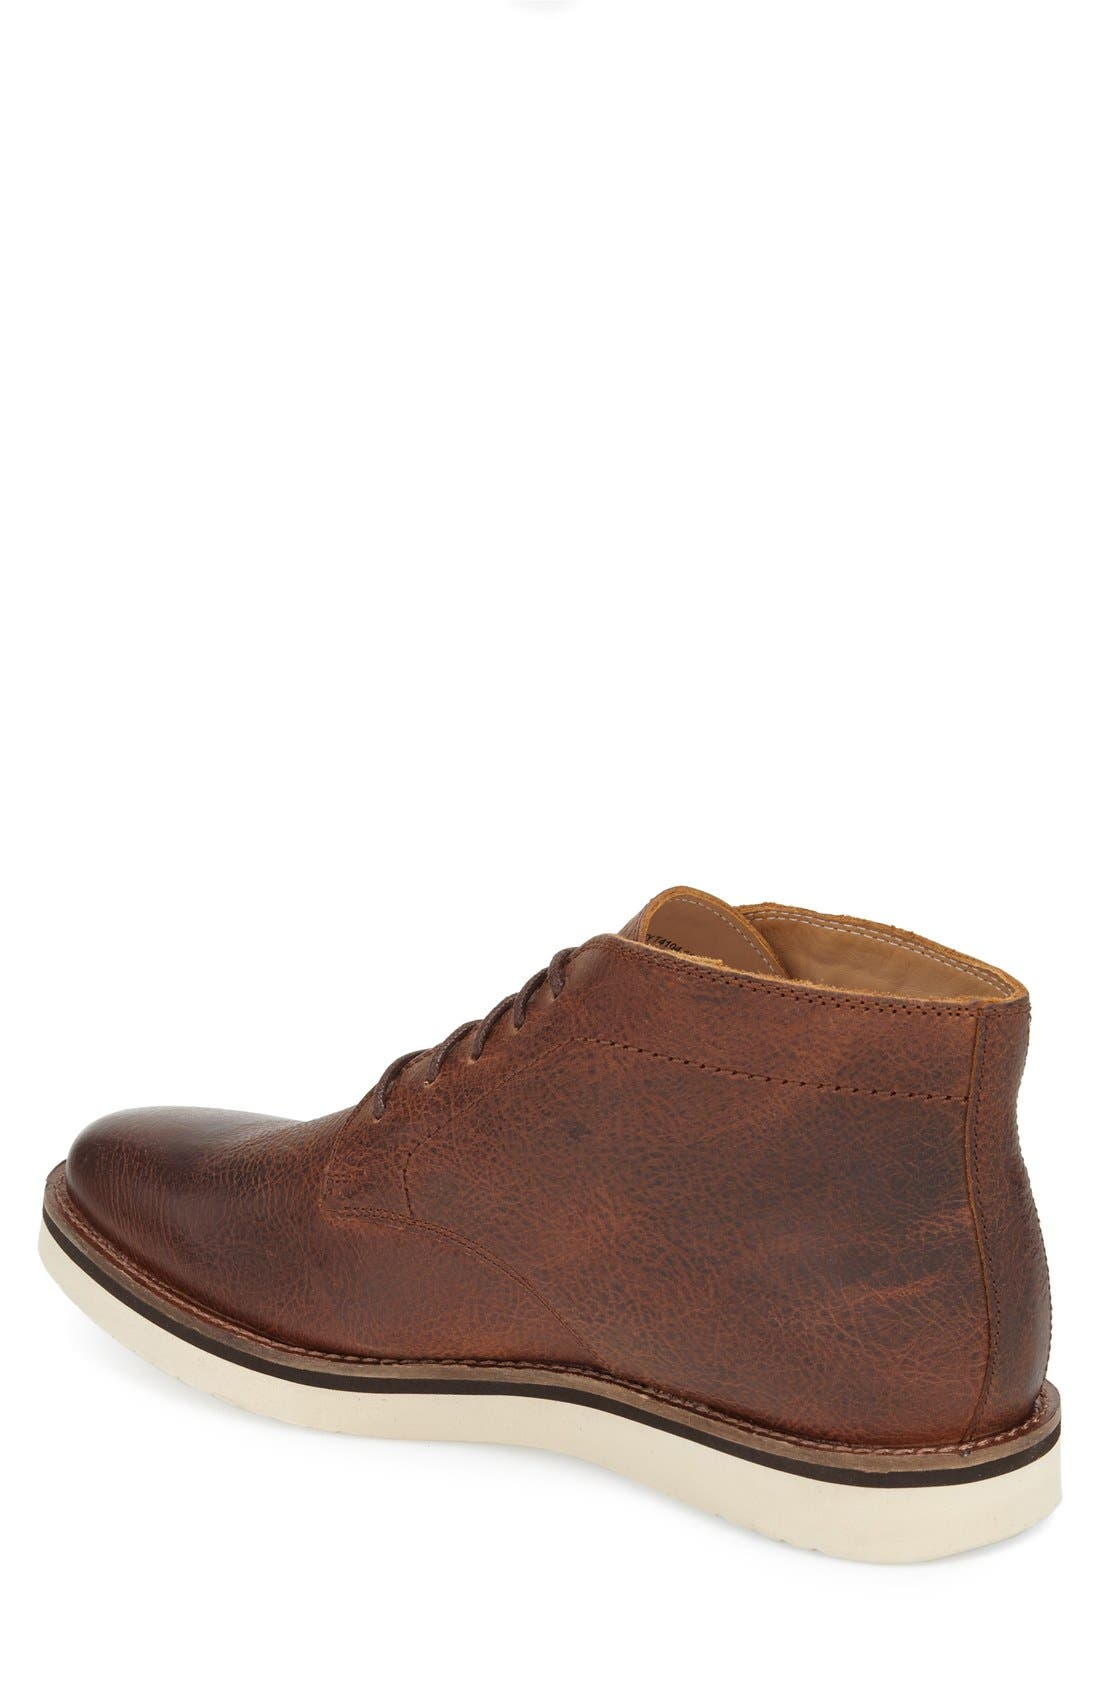 'Farley' Chukka Boot,                             Alternate thumbnail 2, color,                             Caramel Leather